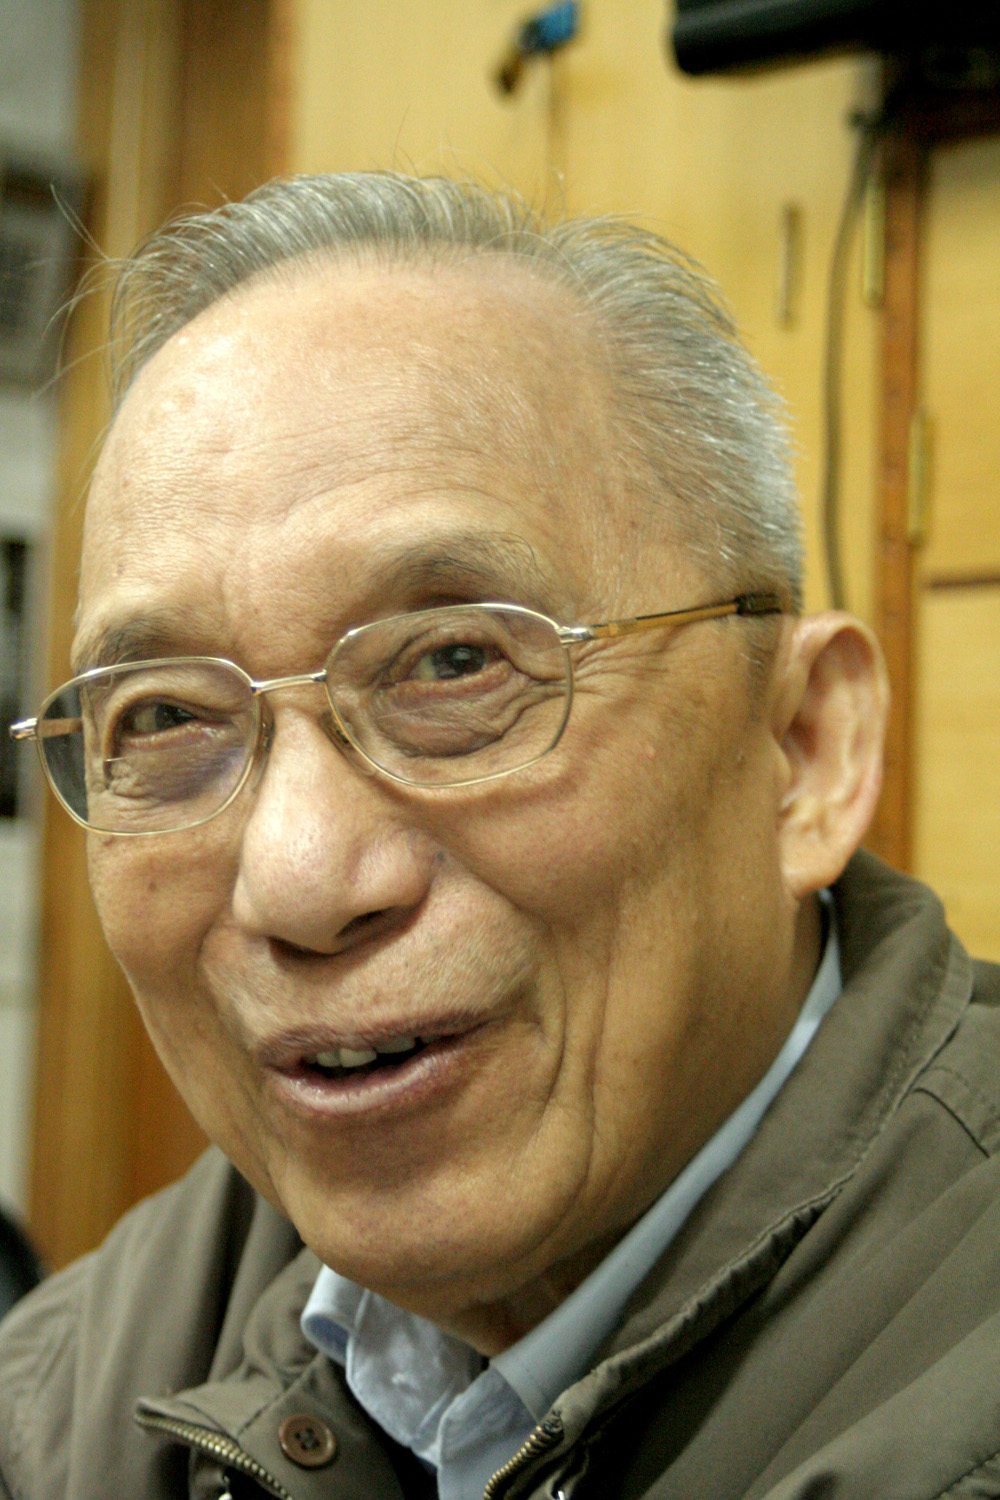 Chinese faith leader leaves bold legacy